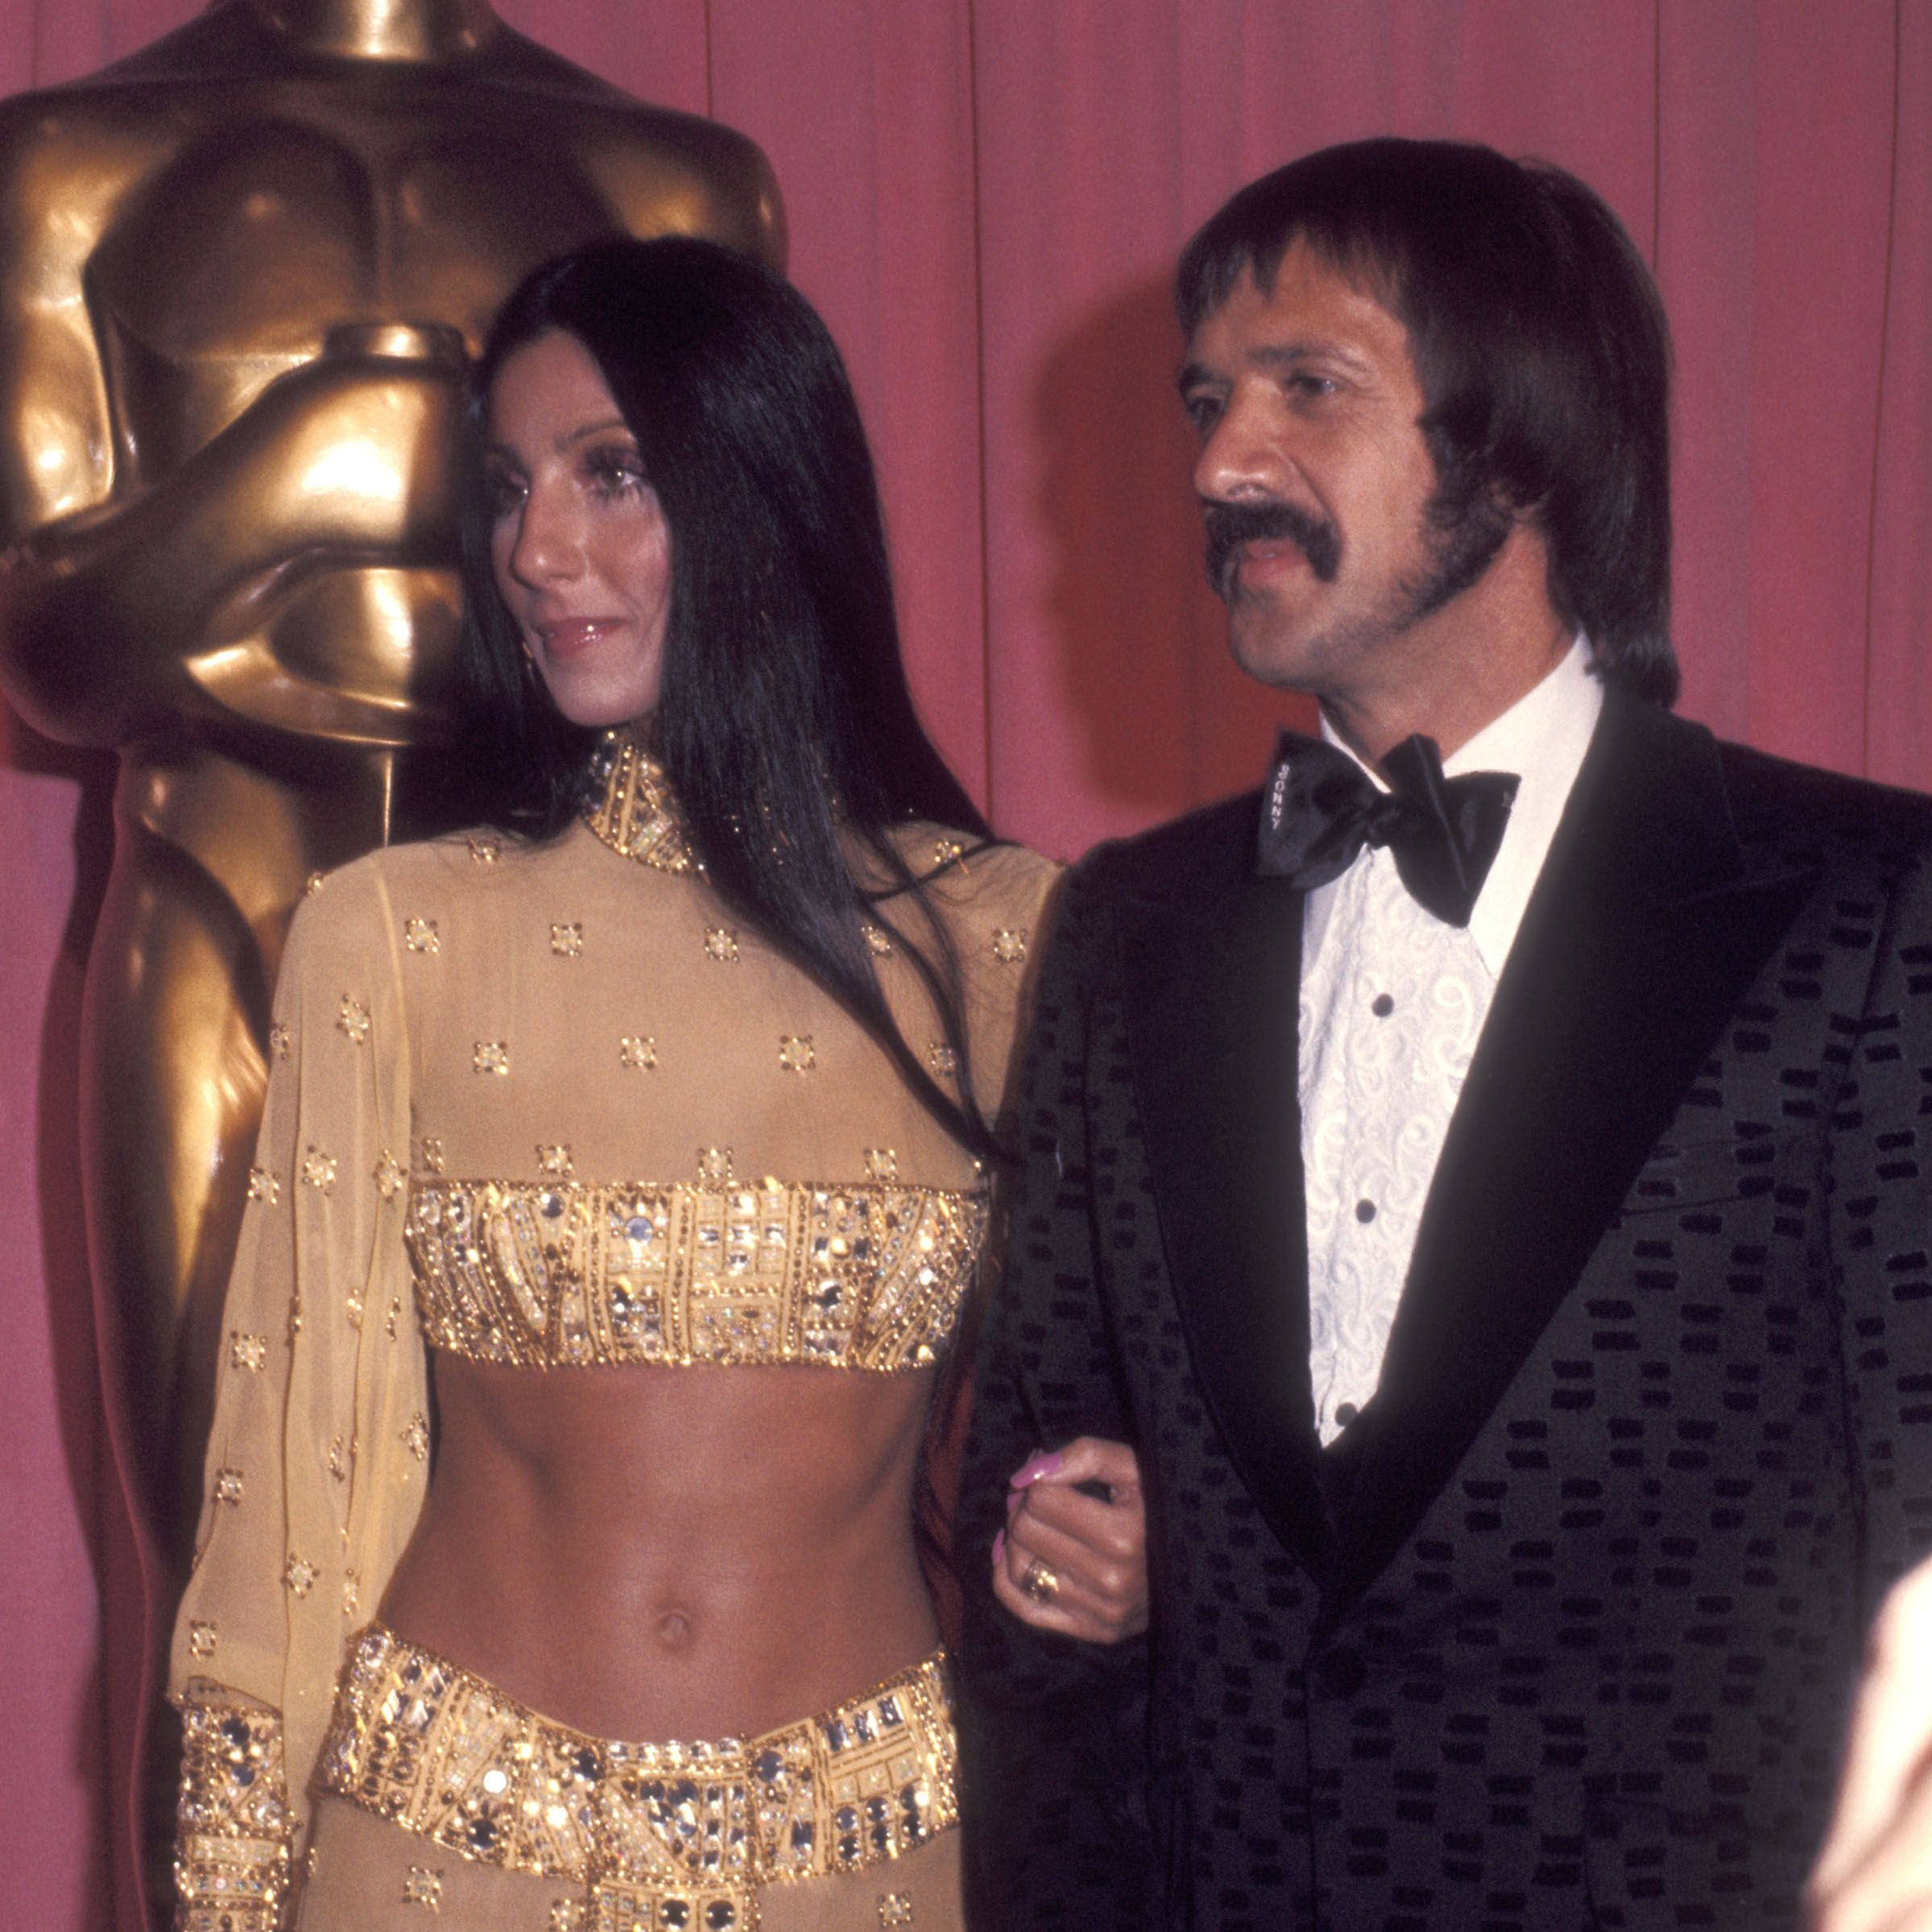 LOS ANGELES - MARCH 27:   Singer Cher and singer Sonny Bono attend the 45th Annual Academy Awards on March 27, 1973 at Dorothy Chandler Pavilion, Los Angeles Music Center in Los Angeles, California. (Photo by Ron Galella/WireImage)